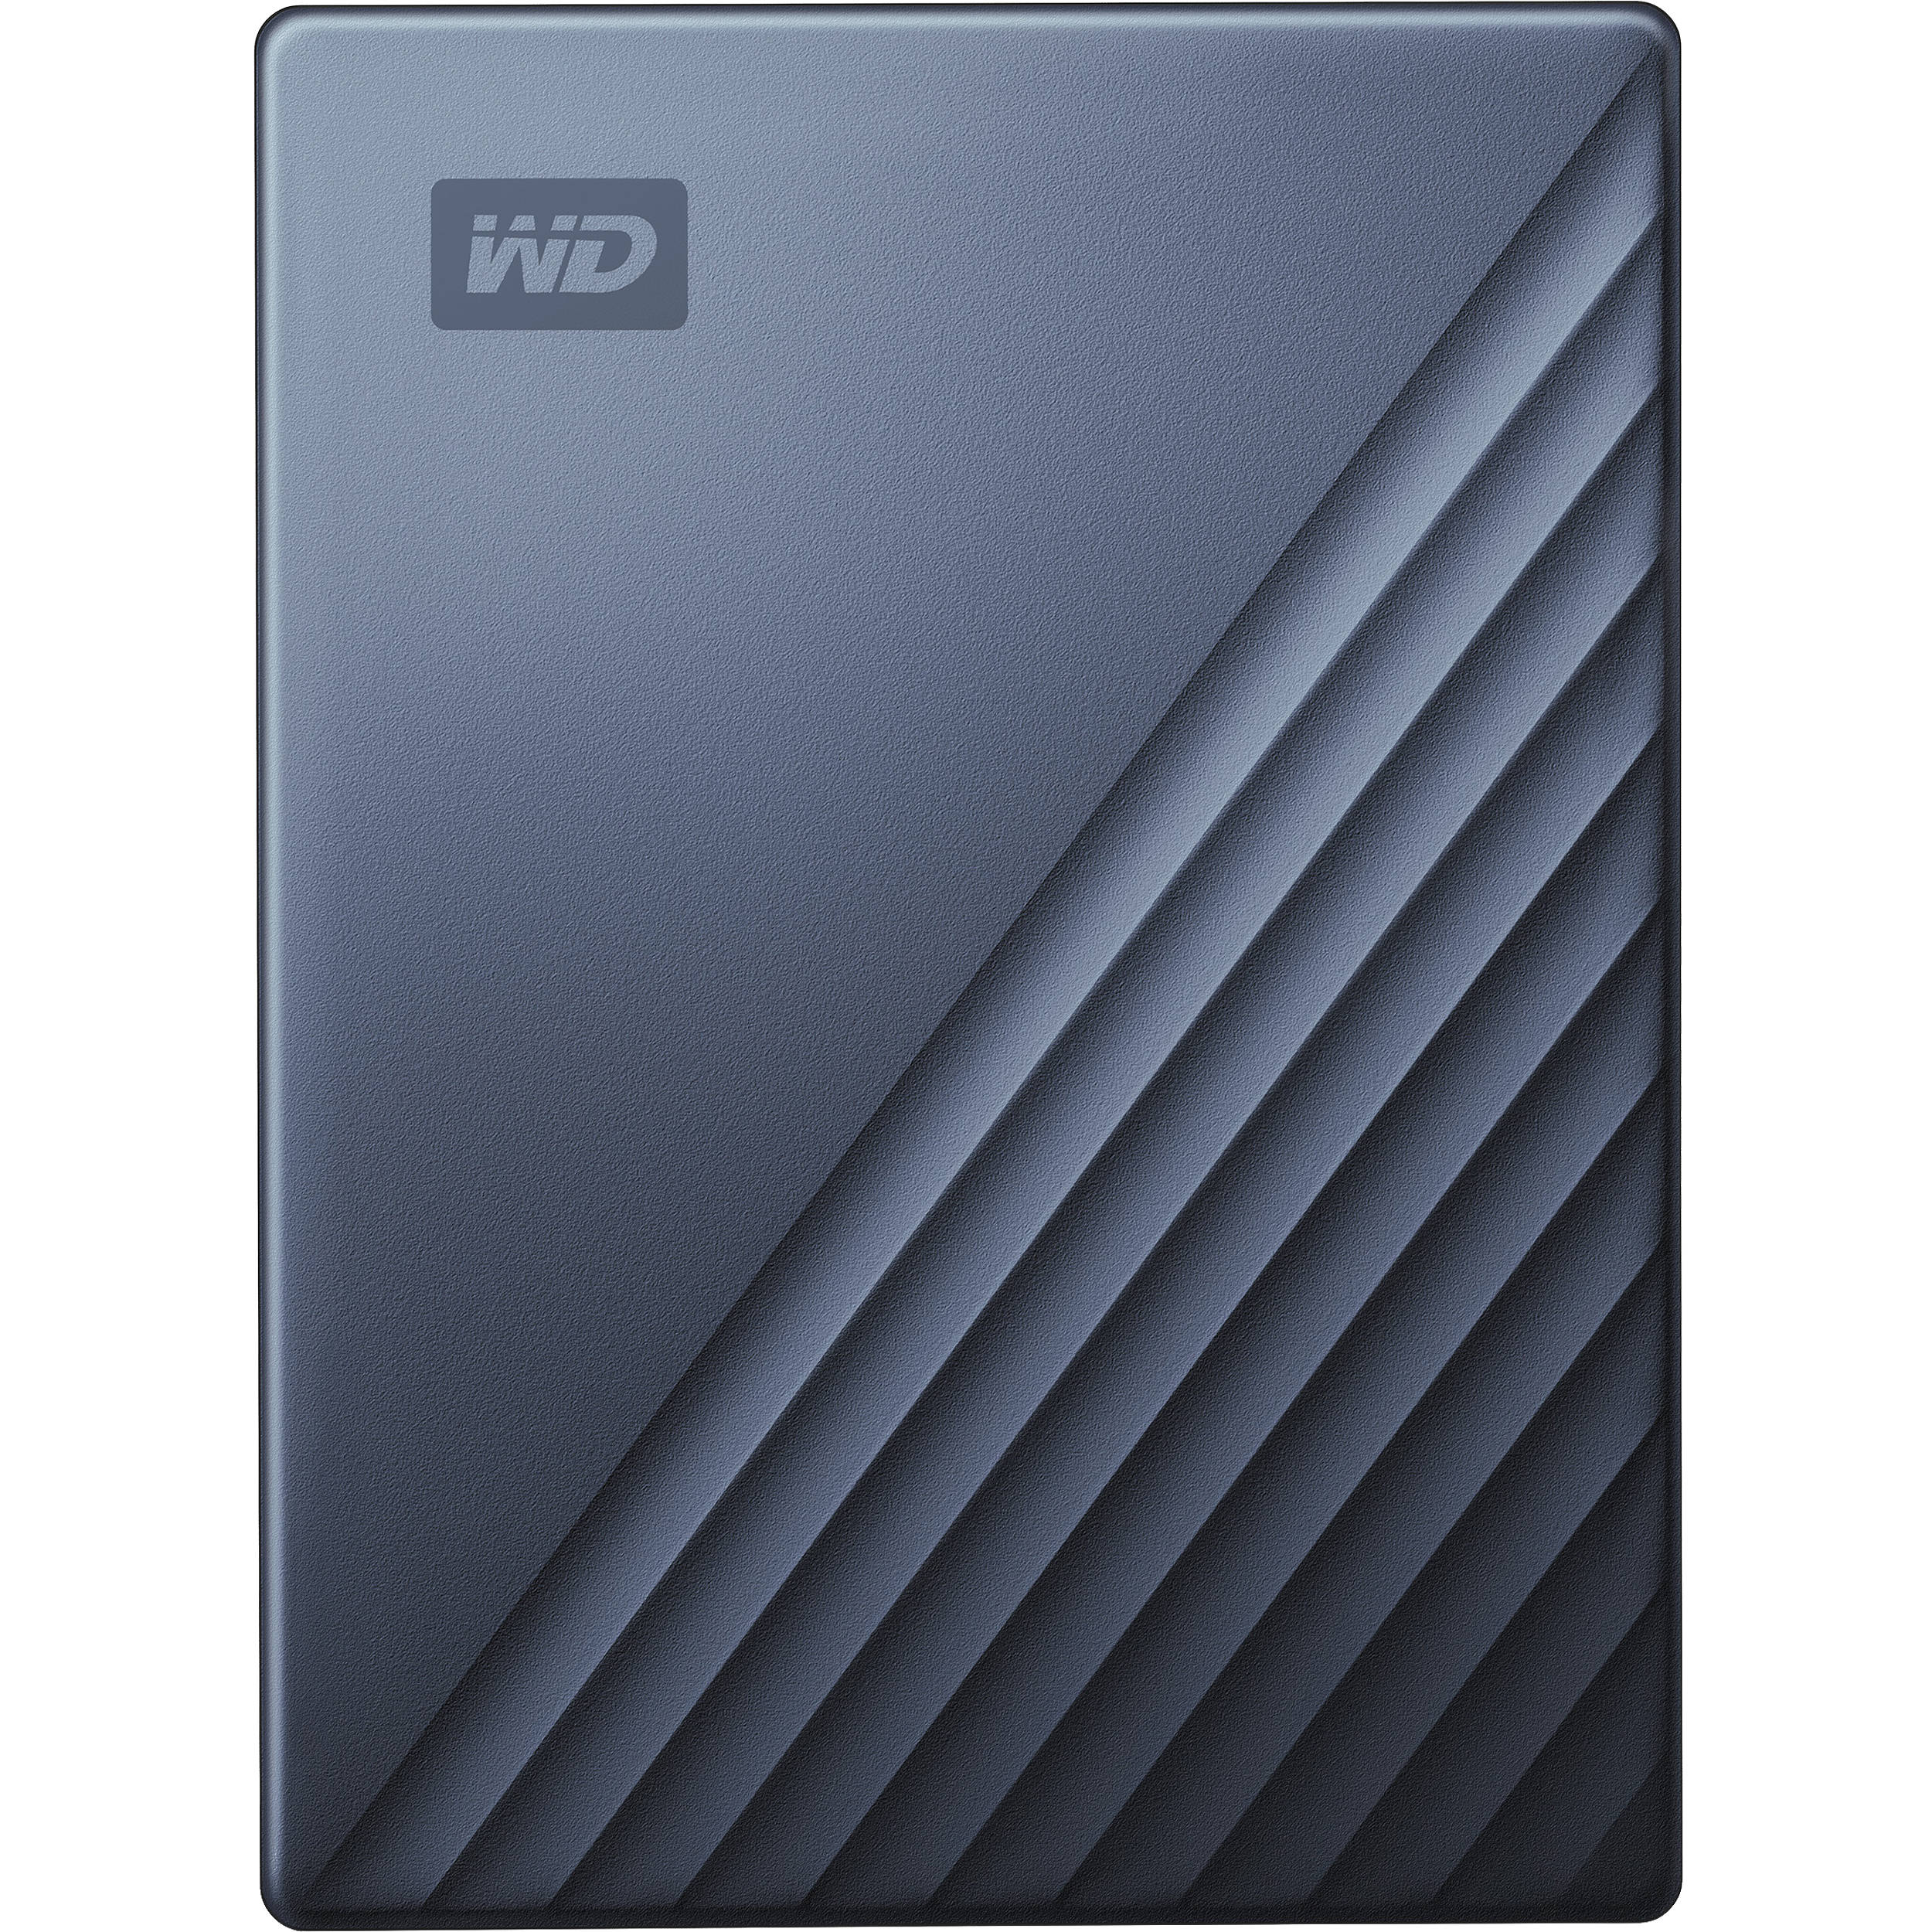 WD 4TB My Passport Ultra USB 3 0 Type-C External Hard Drive (Blue)